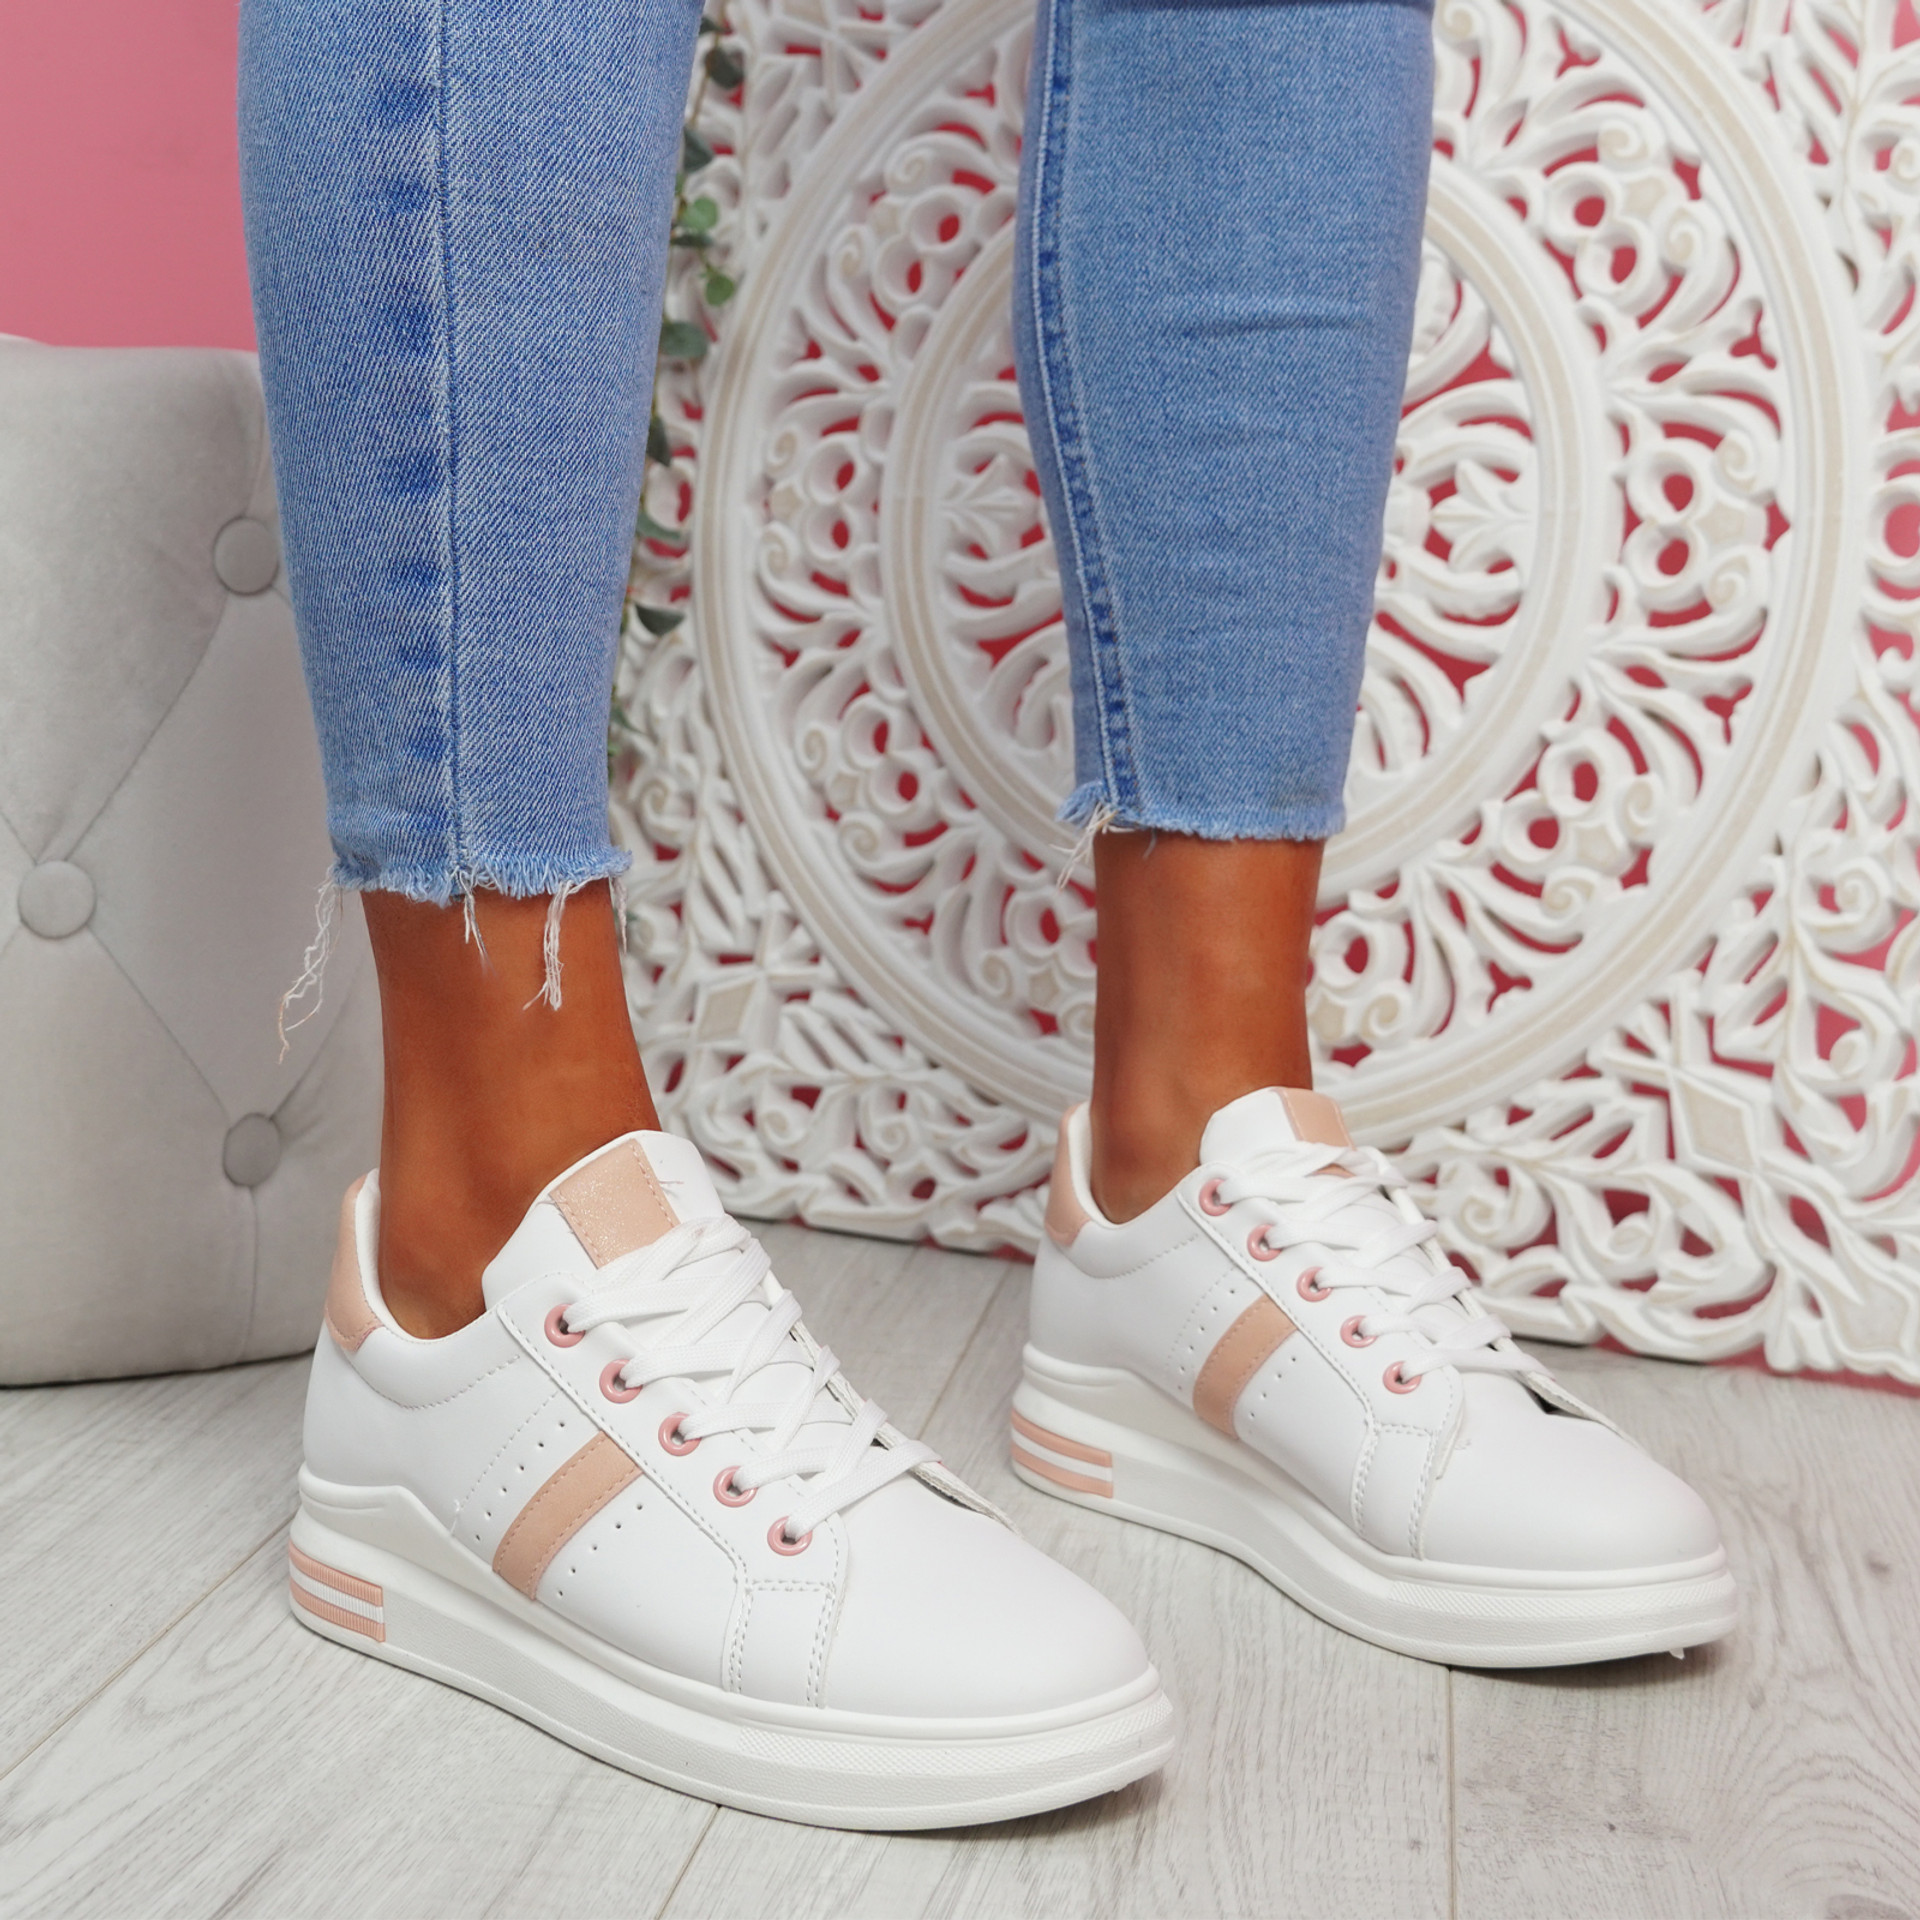 Jomy Pink Lace Up Trainers